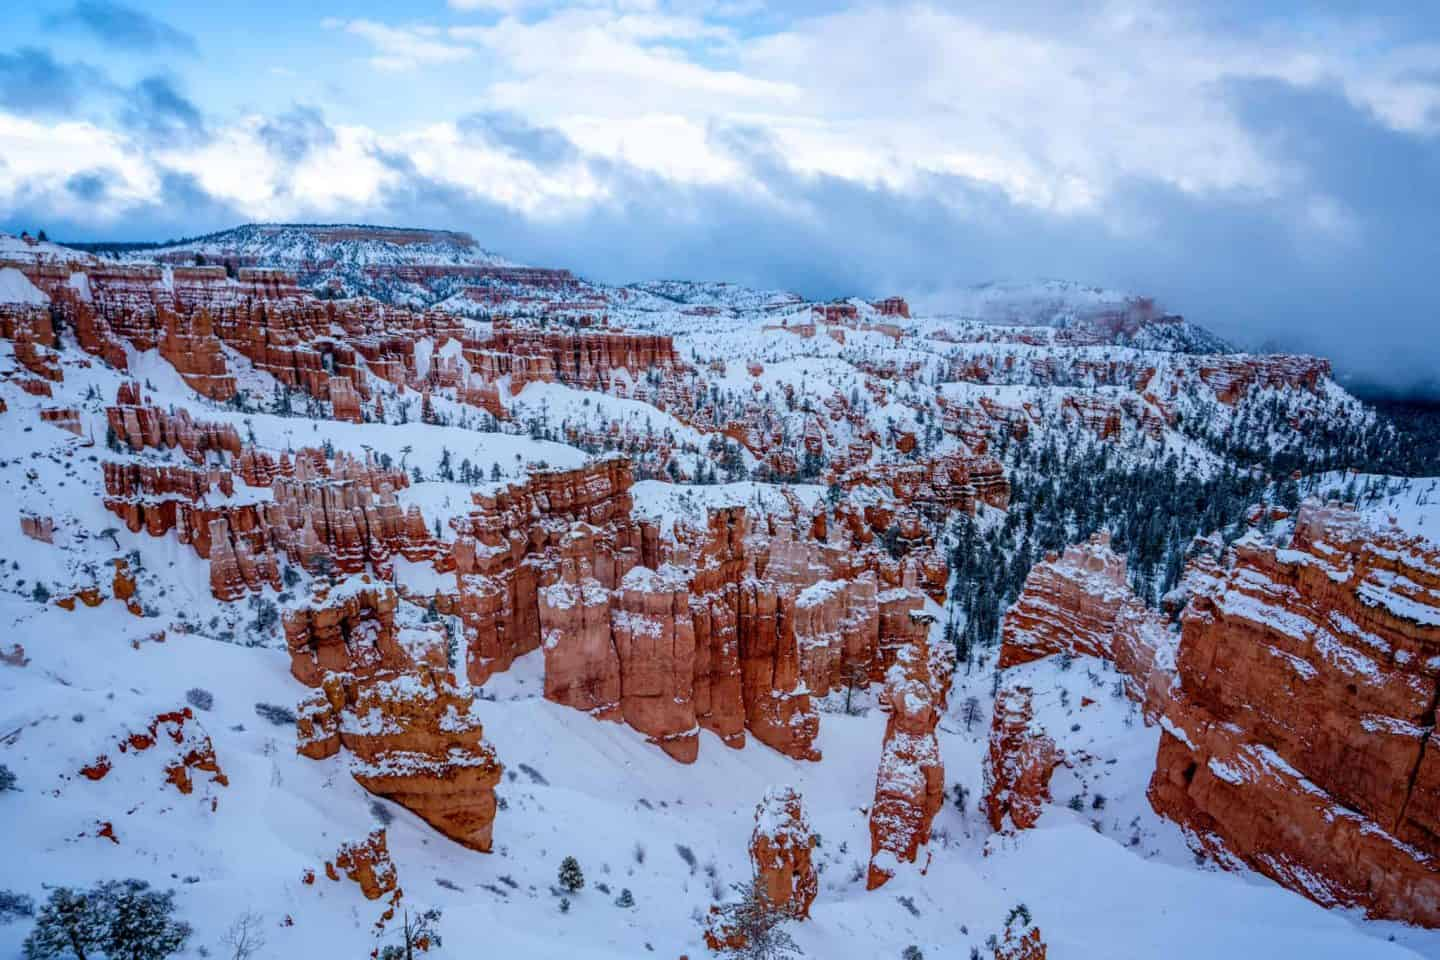 A picture of a snowy day at Bryce Canyon National Park.